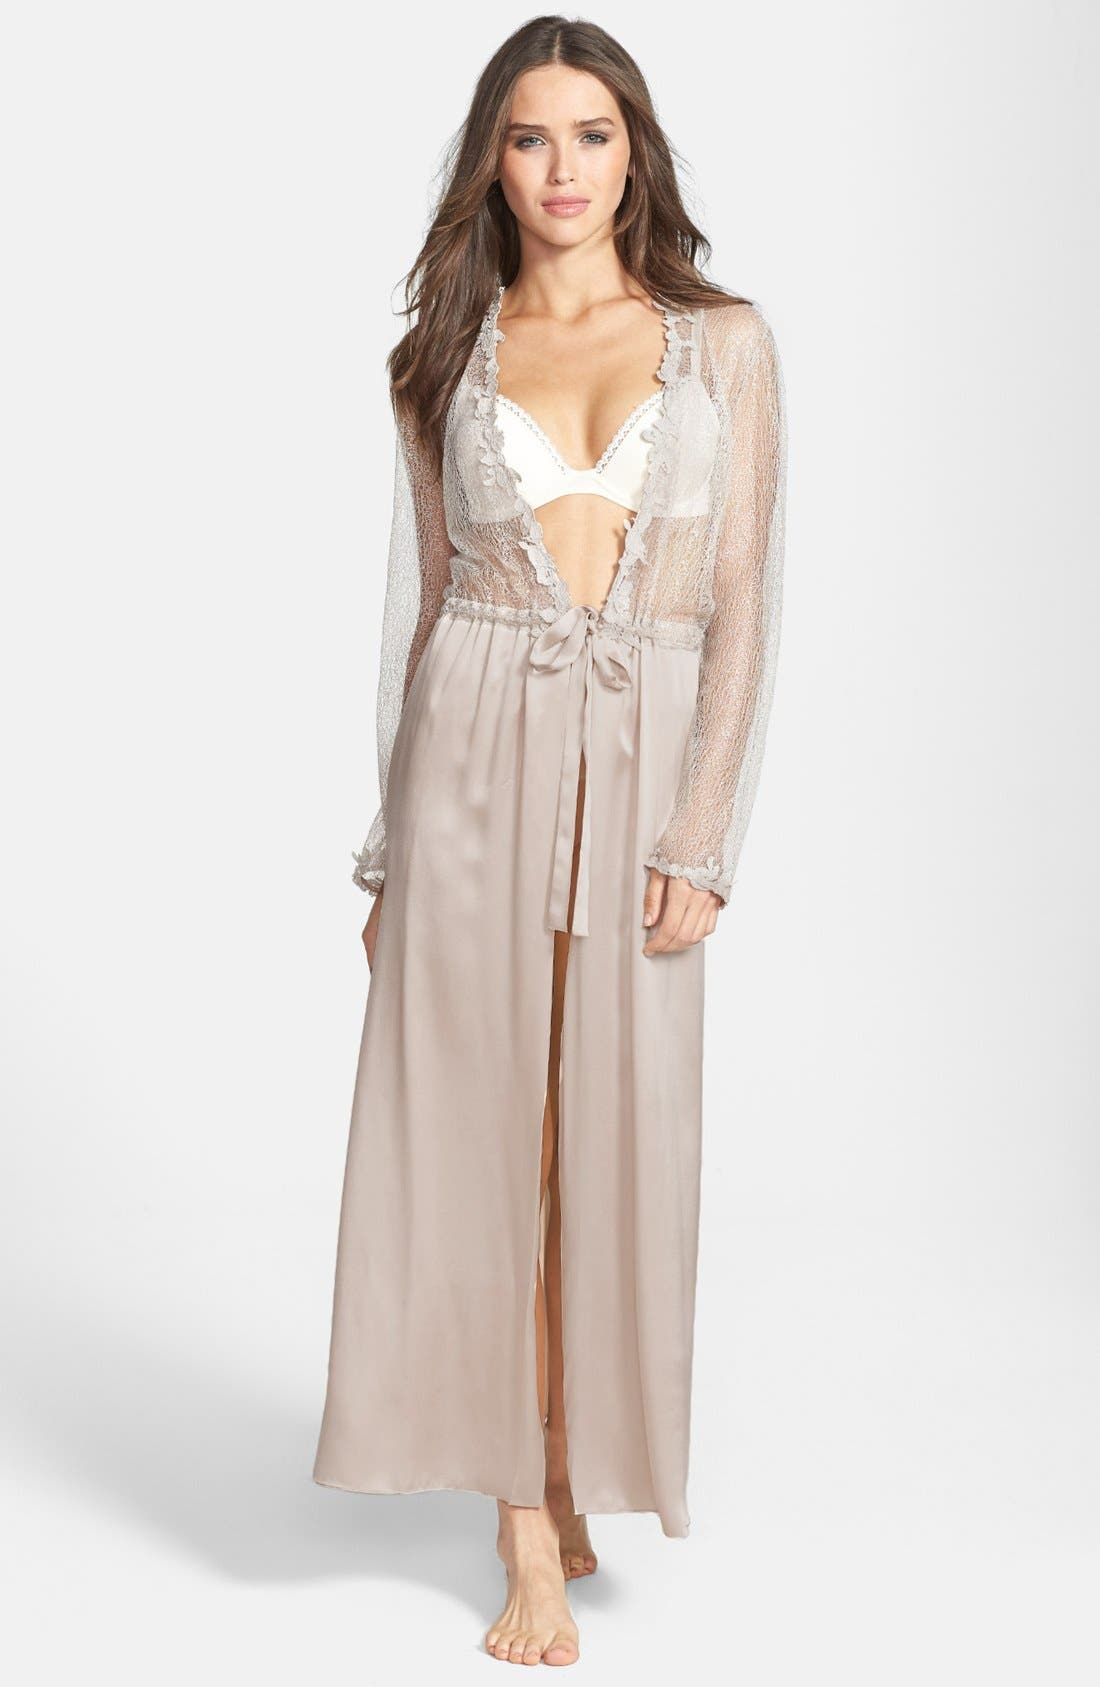 FLORA NIKROOZ Showstopper Robe in Champagne